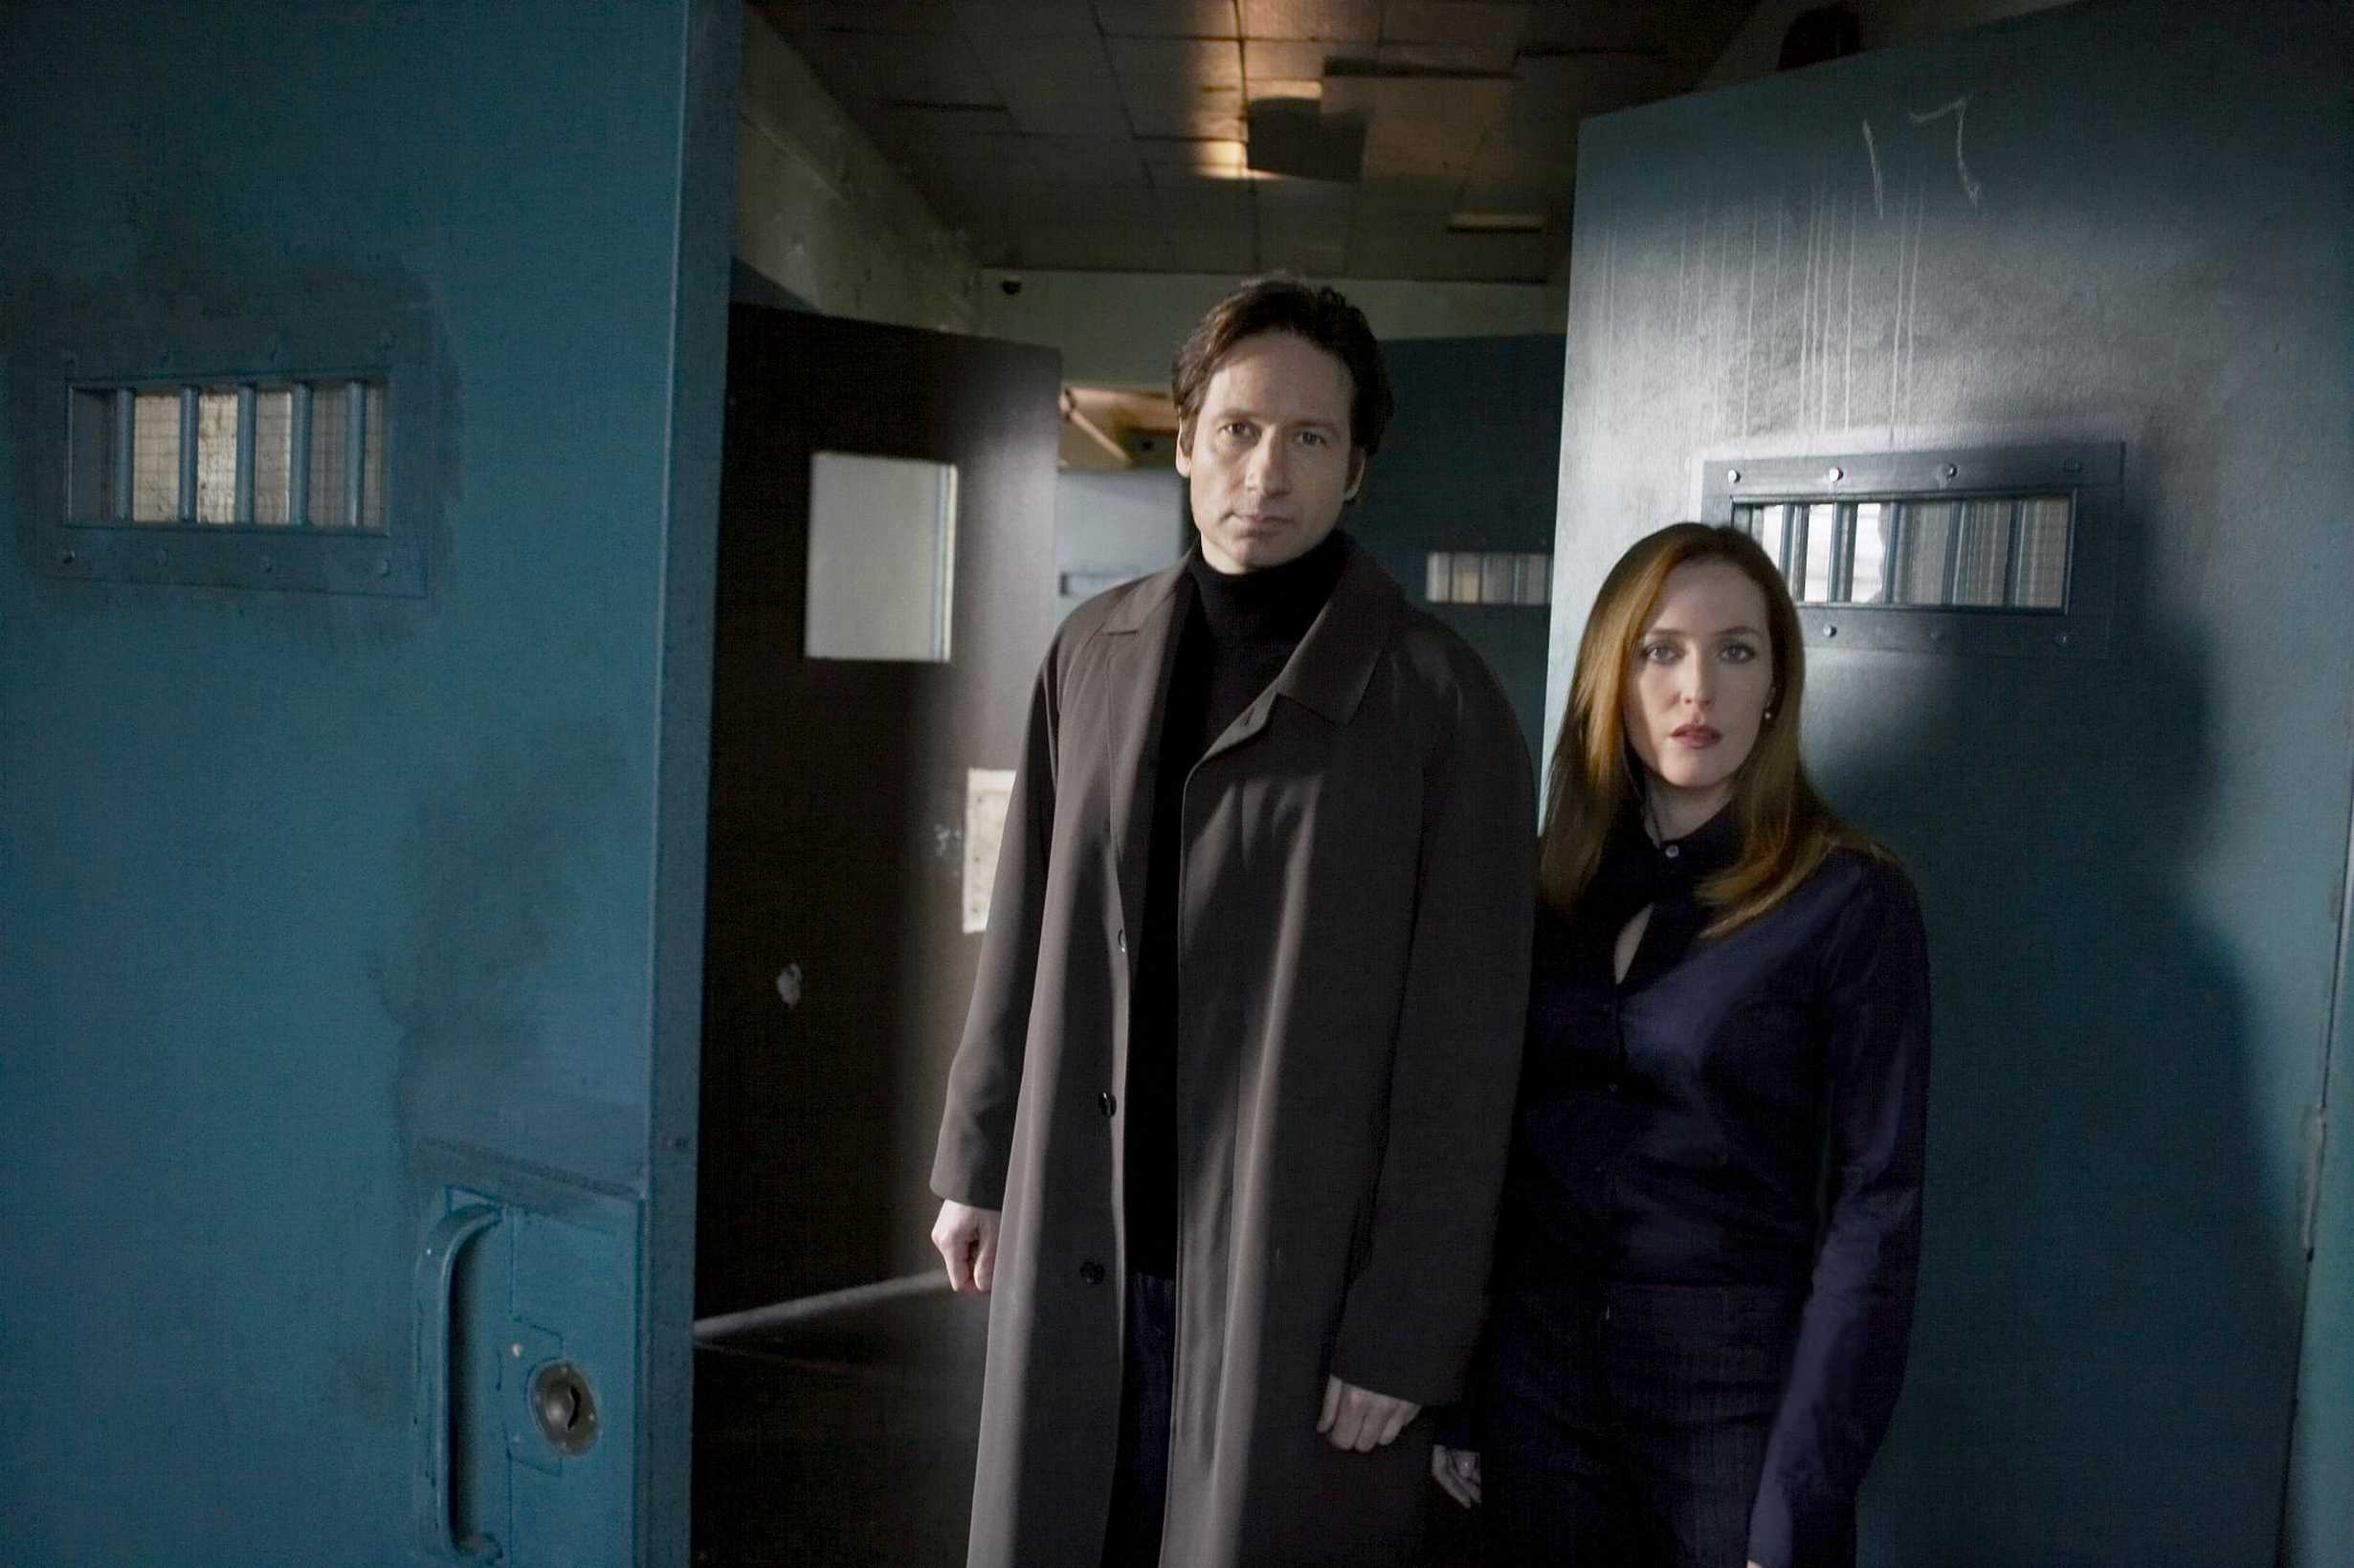 David Duchovny and Gillian Anderson are seen in the film <i>The X-Files: I Want to Believe</i> in 2008.